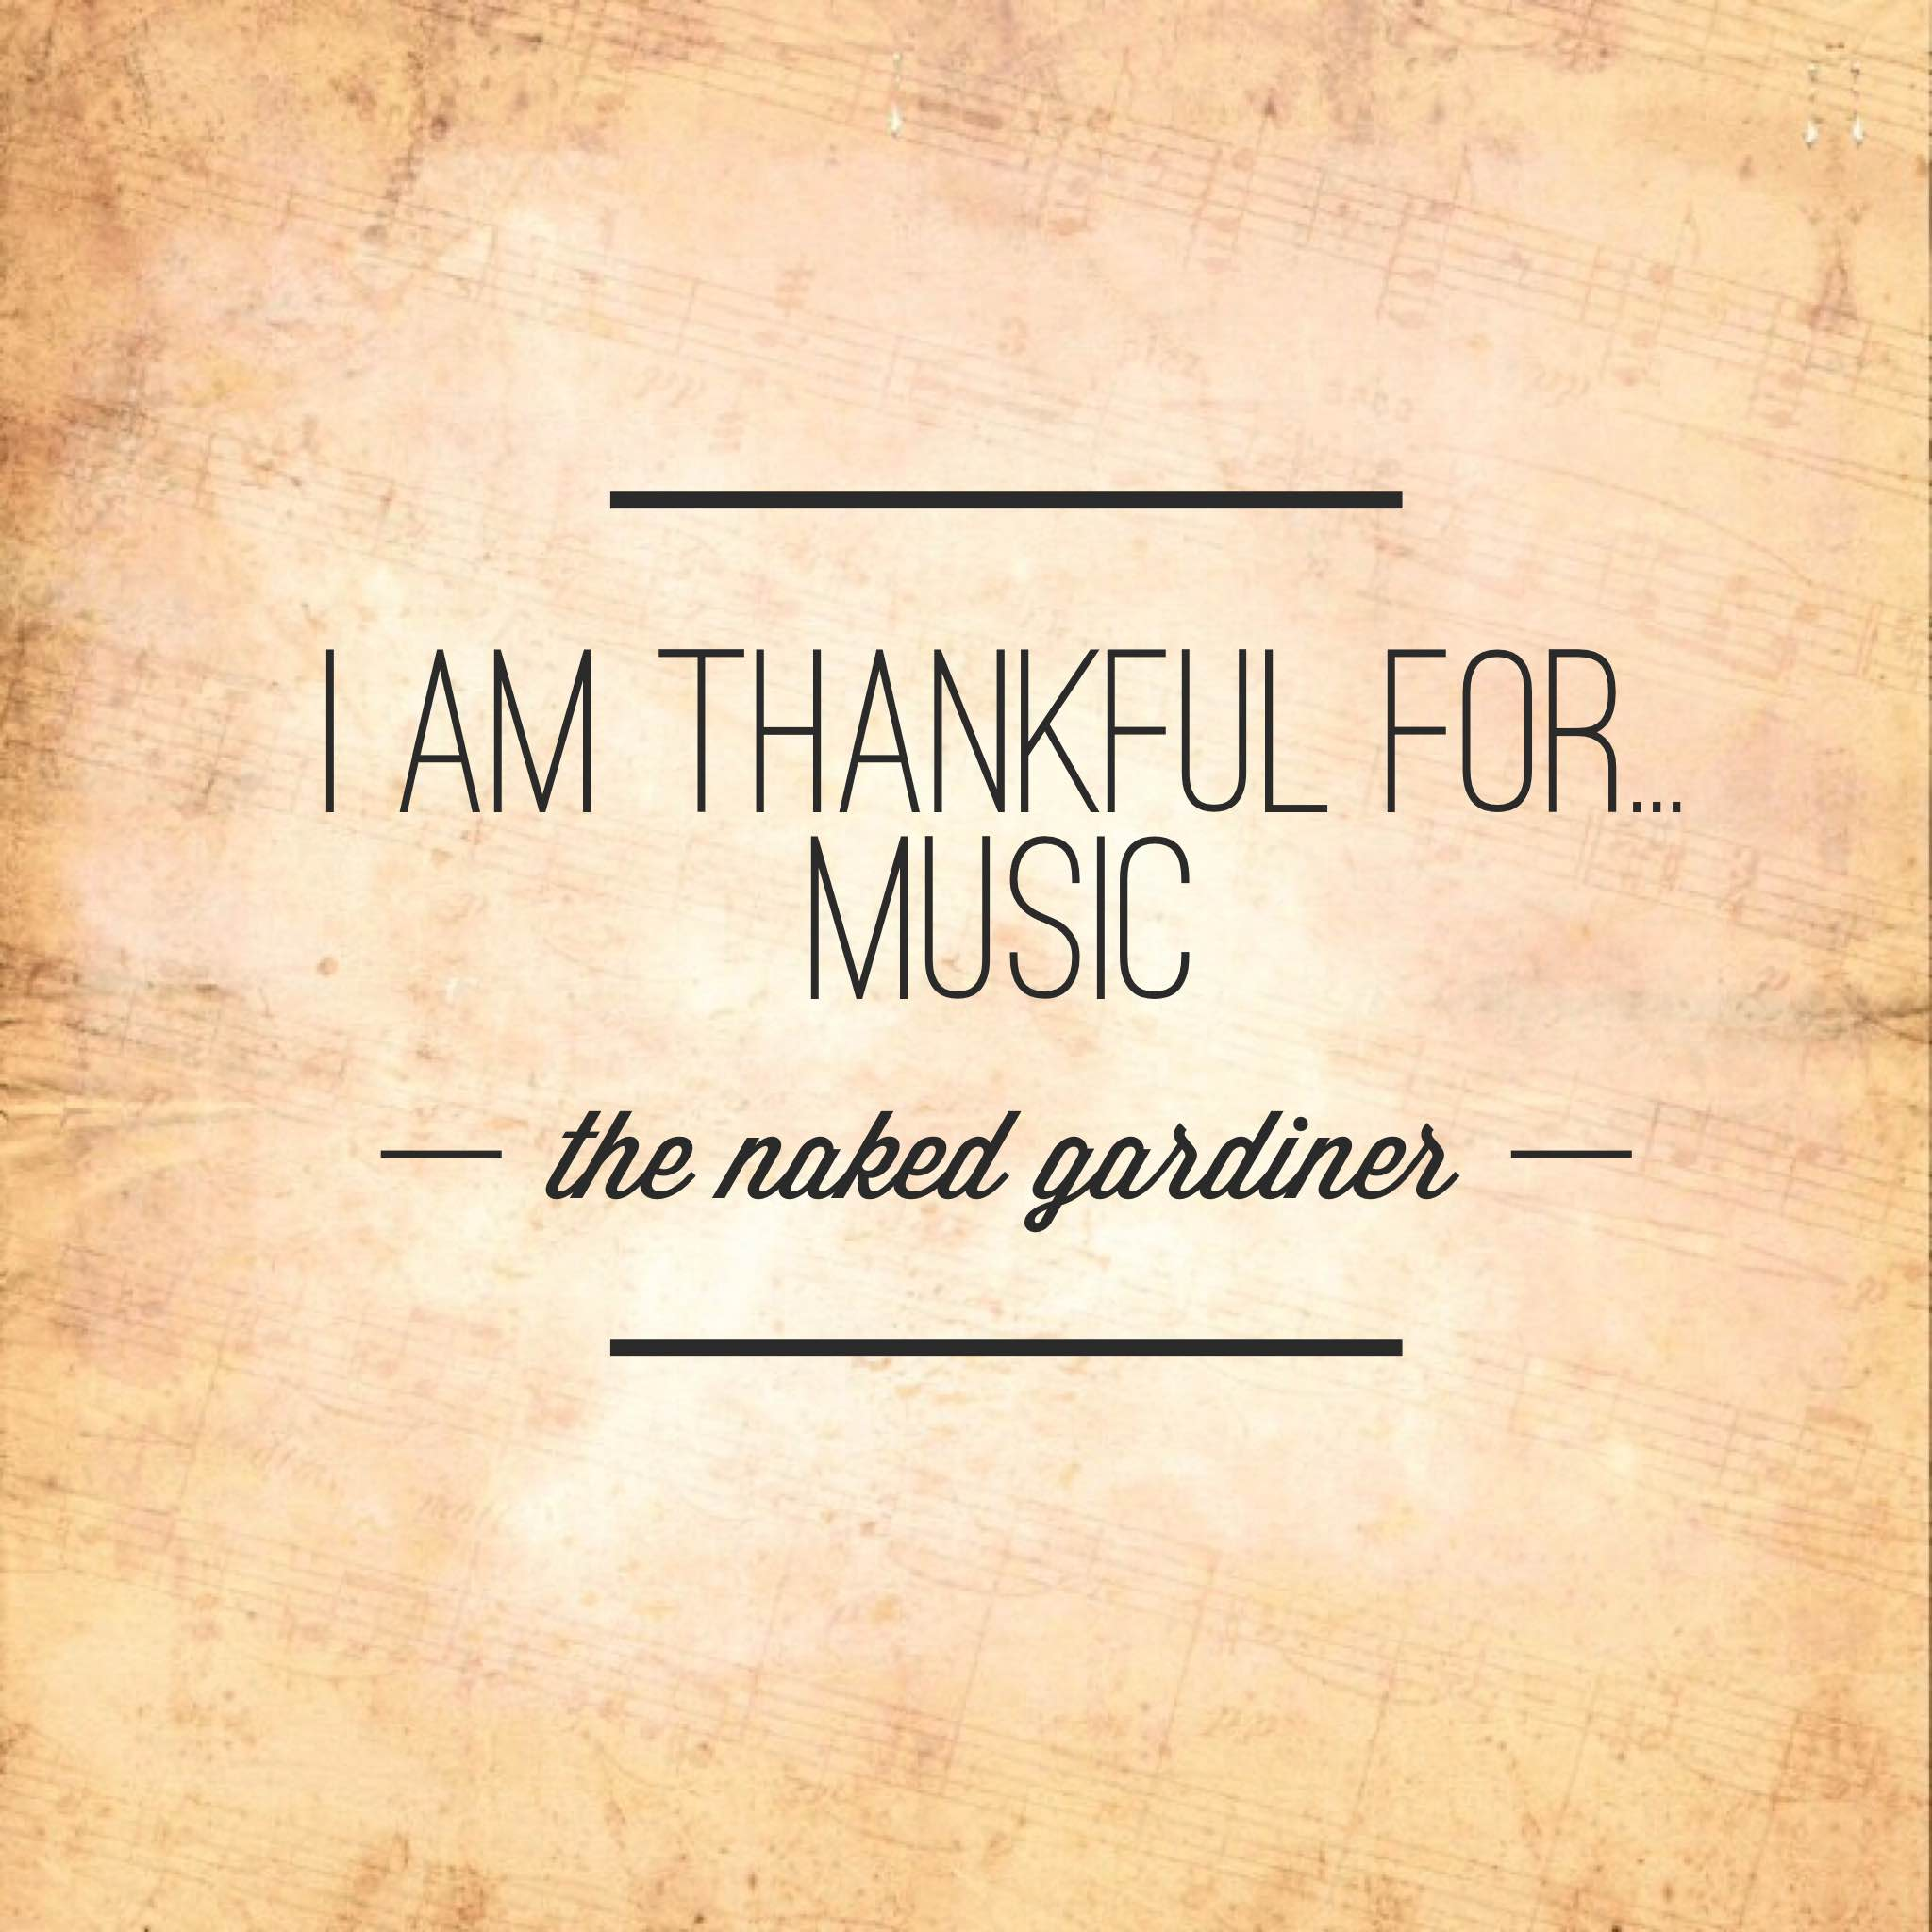 thankful-thursdays-music-thenakedgardiner